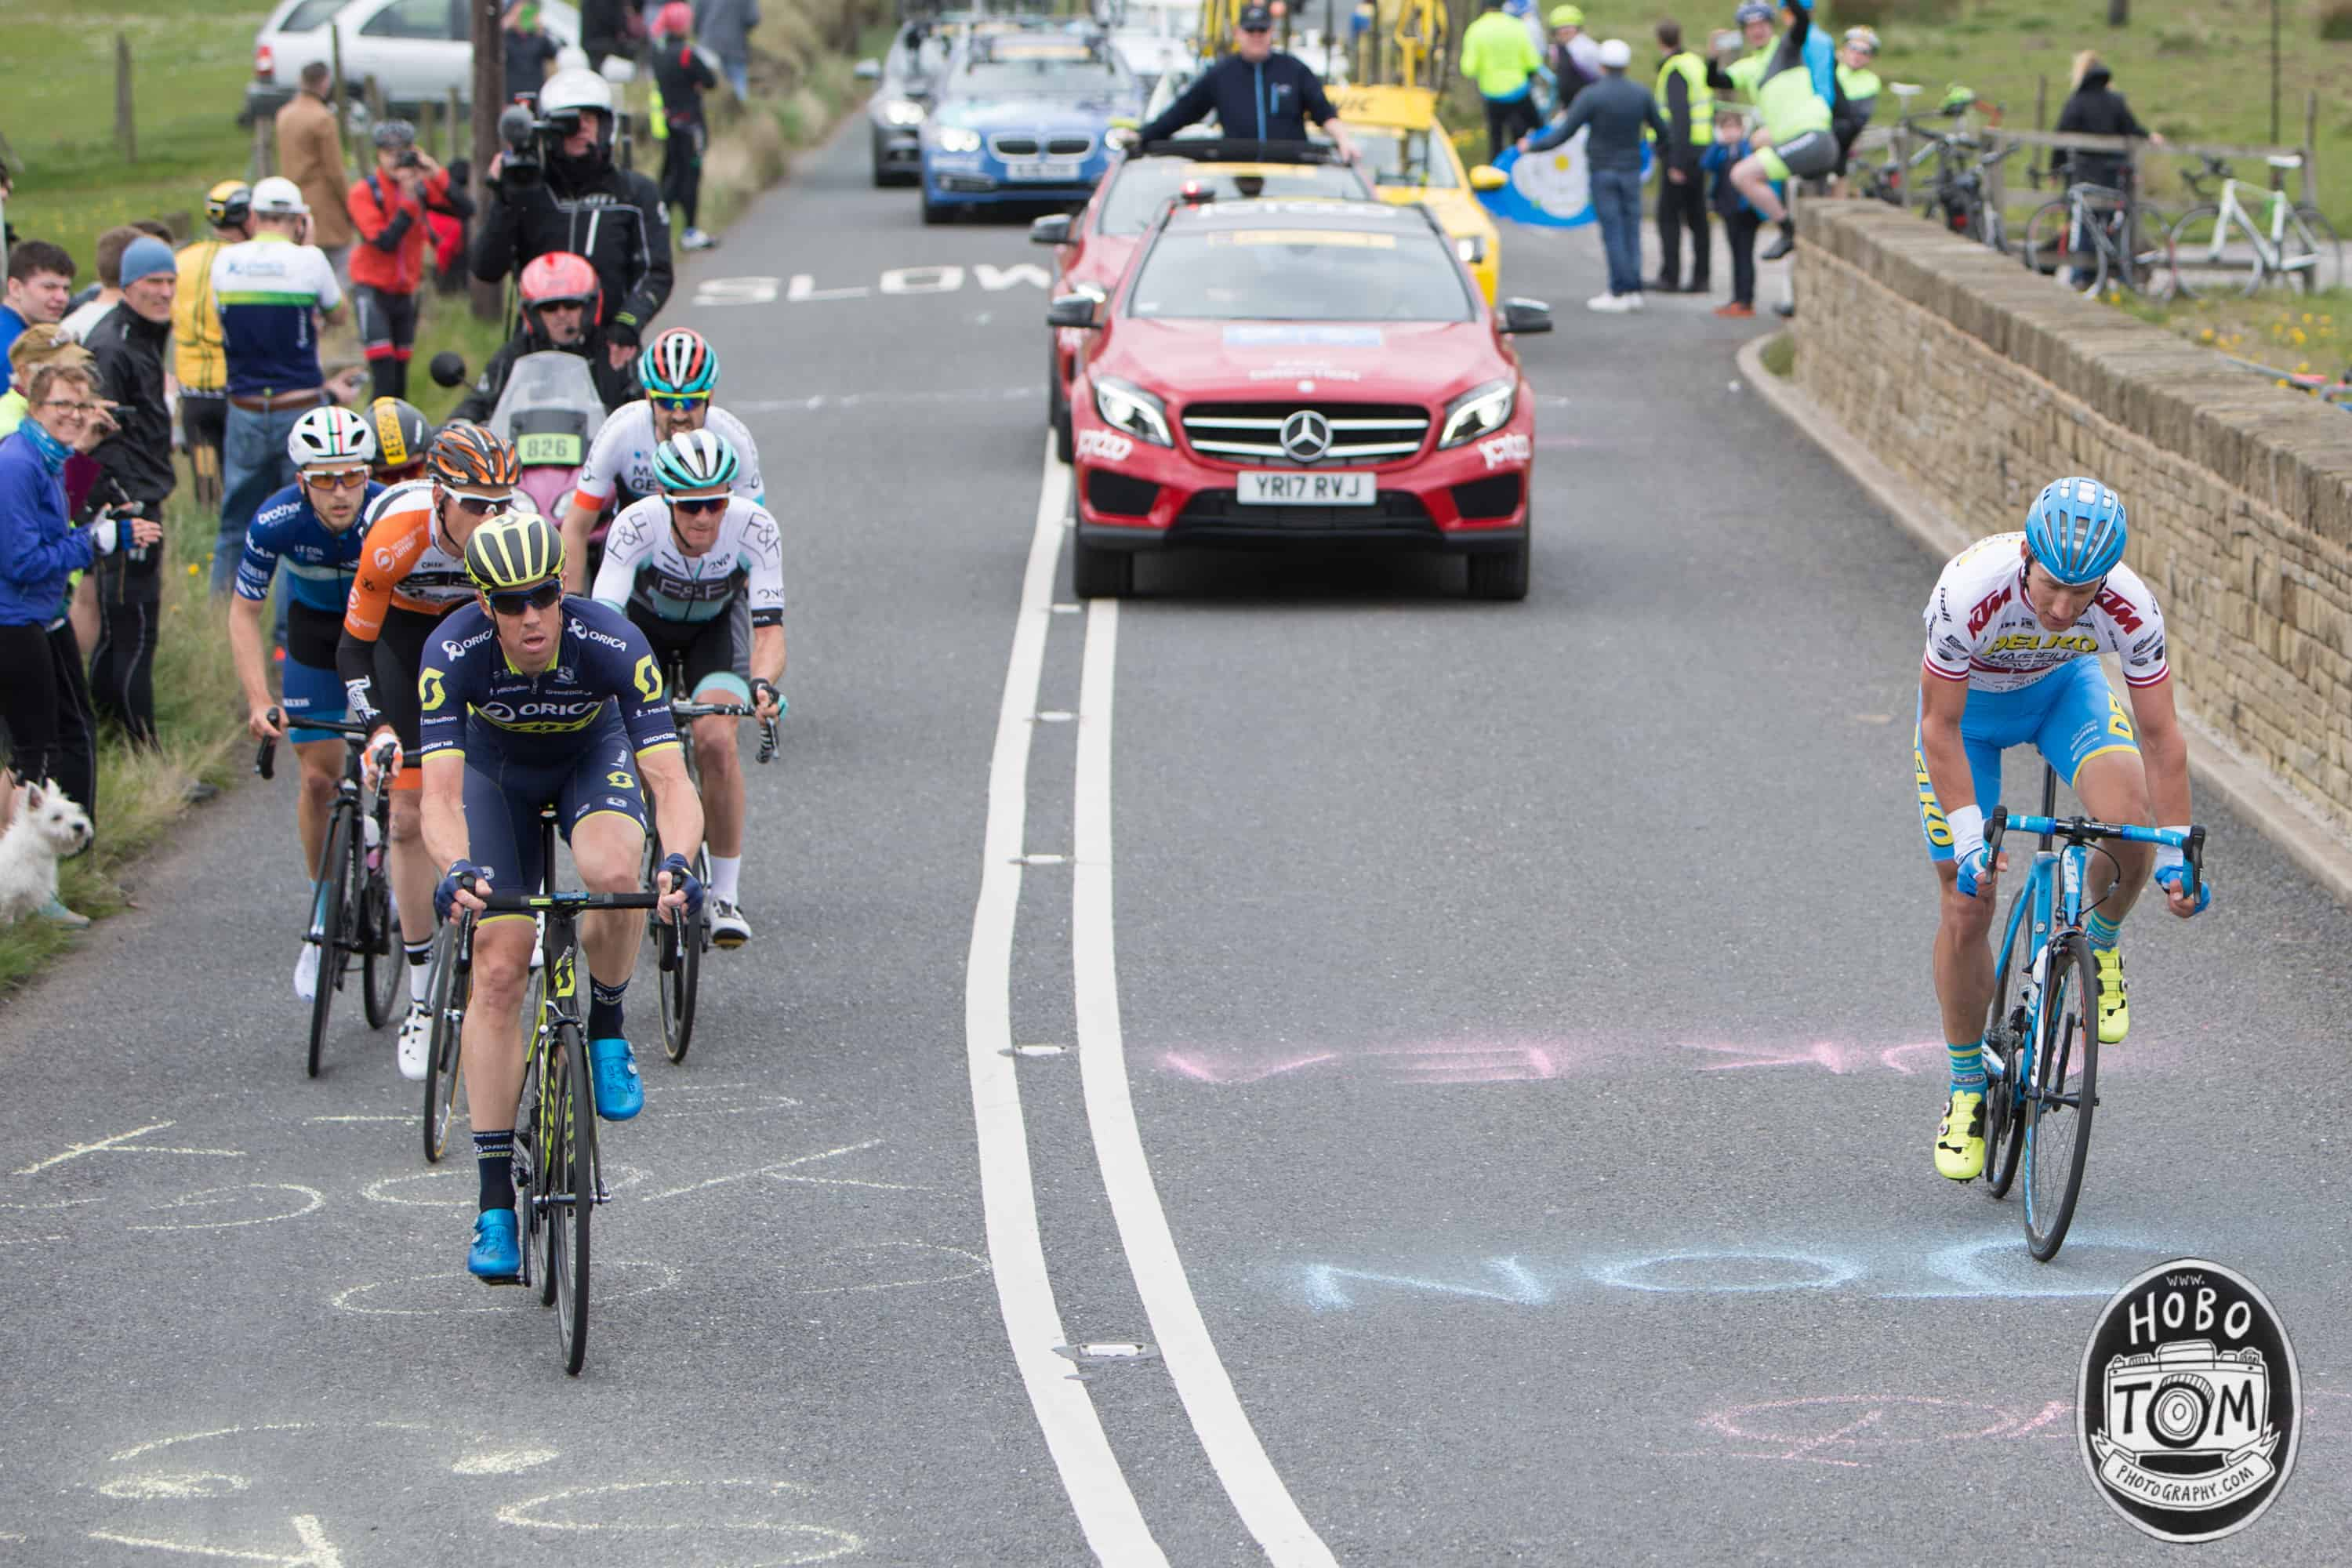 Break Away, Tour de Yorkshire